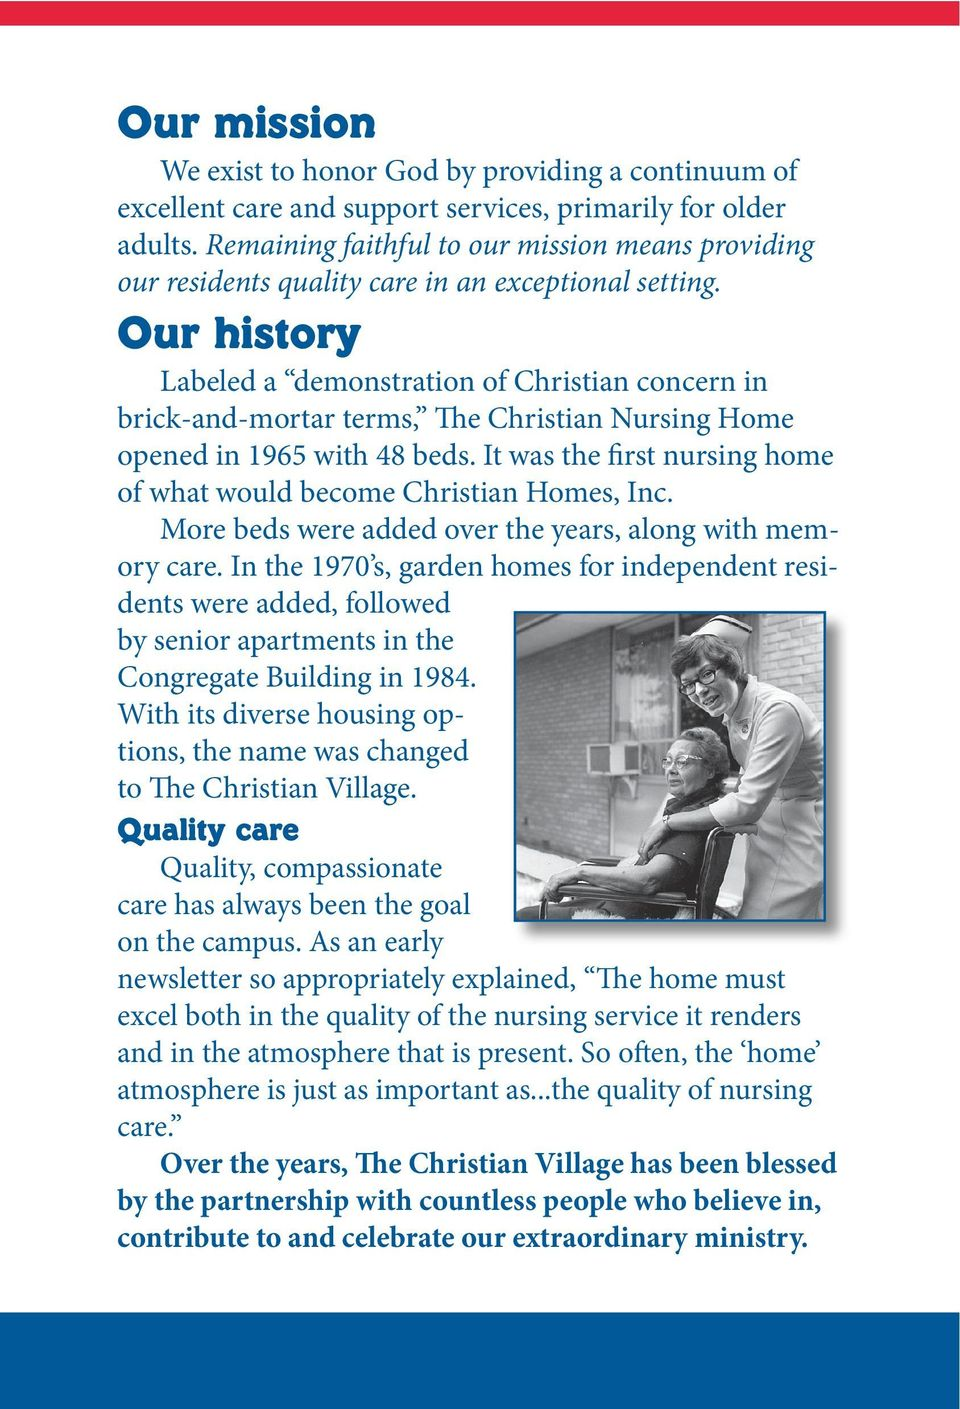 Our history Labeled a demonstration of Christian concern in brick-and-mortar terms, The Christian Nursing Home opened in 1965 with 48 beds.